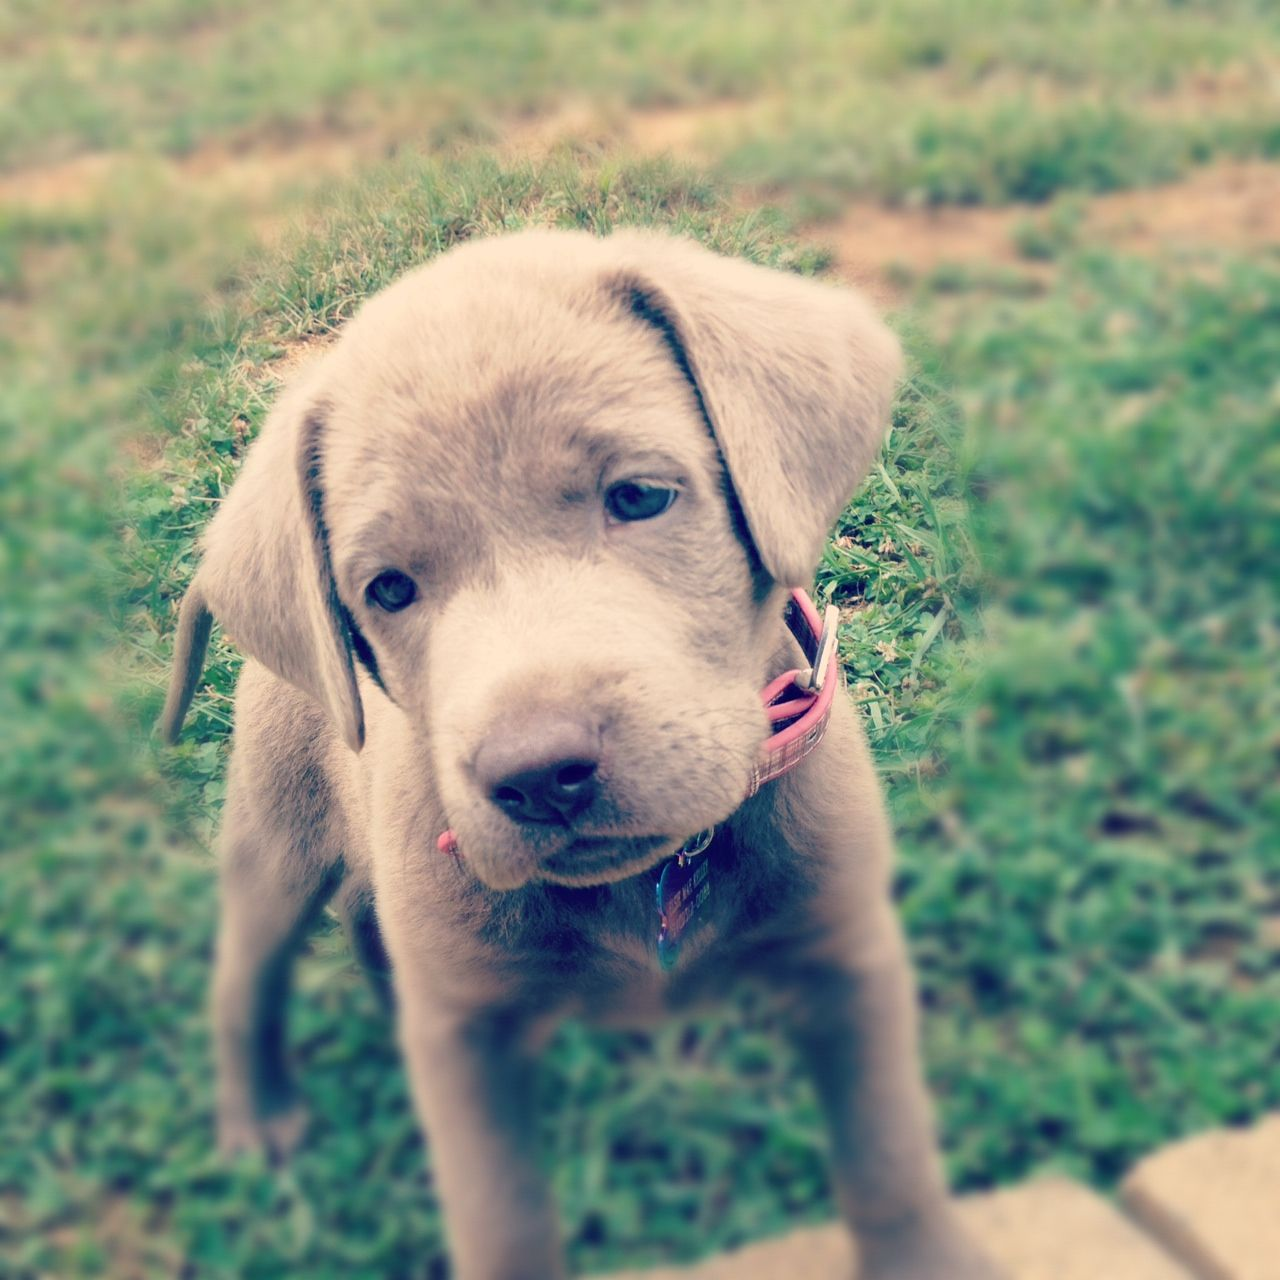 Silver lab puppies for sale in maine